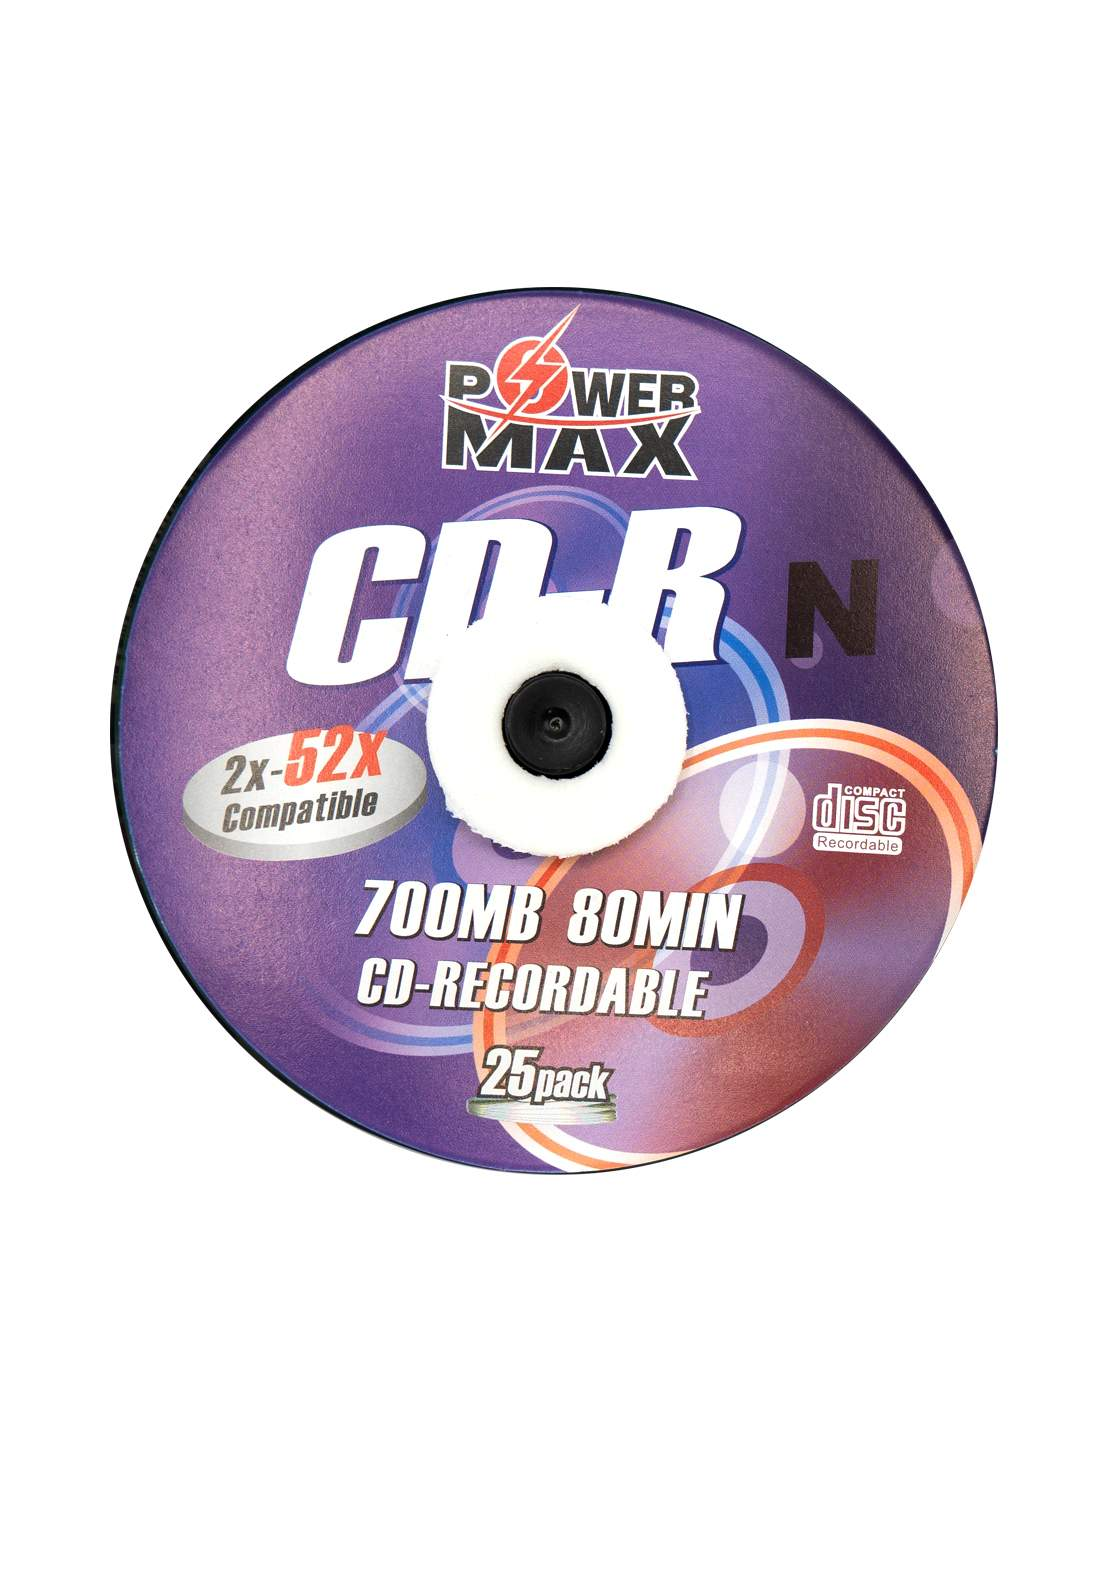 Power Max CD-R 700MB 80 Minute 52x Recordable Disc  - 25 Pack اقراص سي دي ليزرية